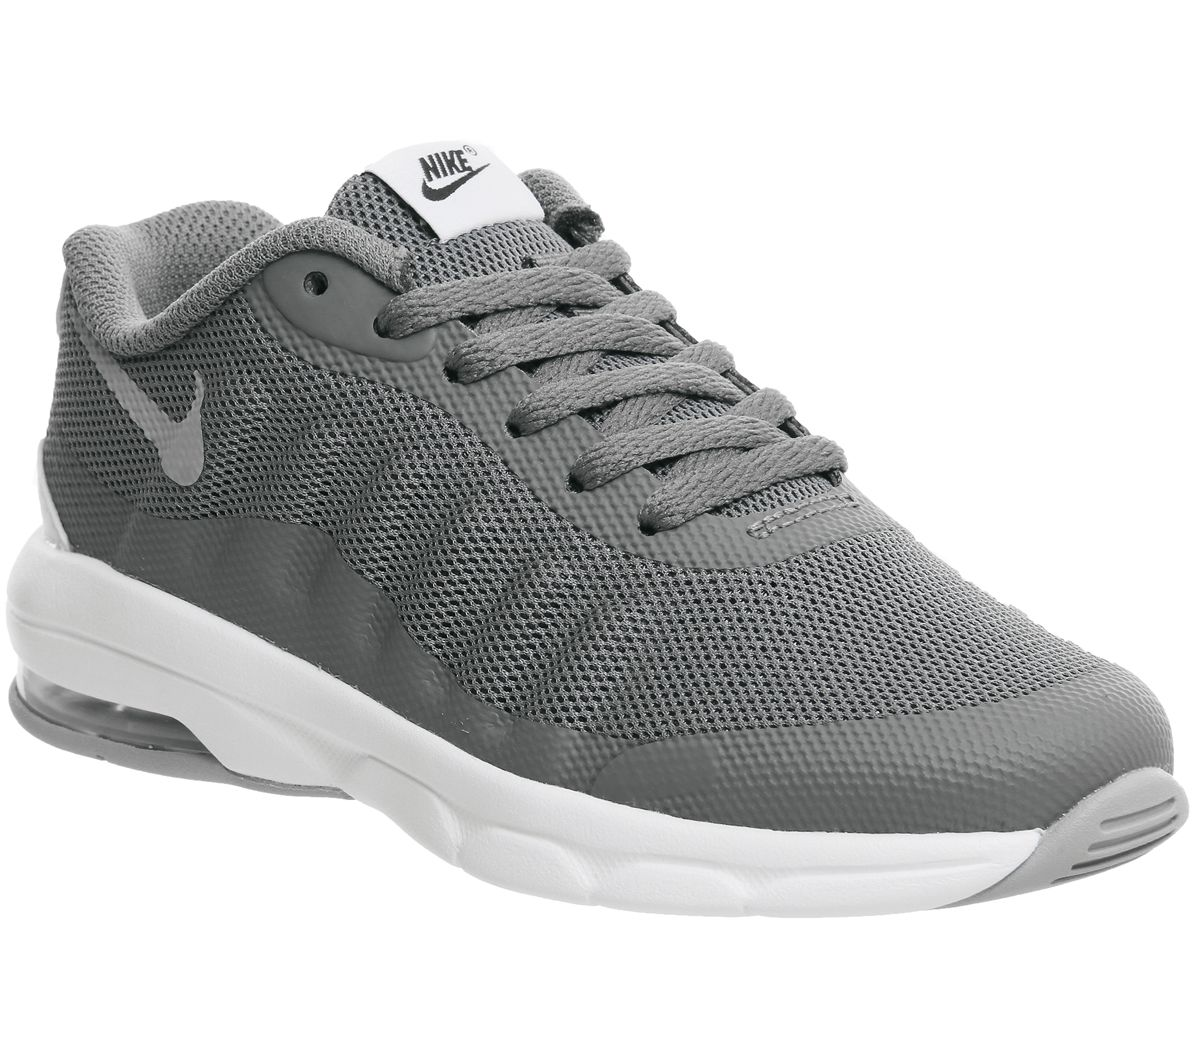 the latest 1ed42 9fd46 Nike Invigor Ps Cool Grey Wolf Grey White - Unisex